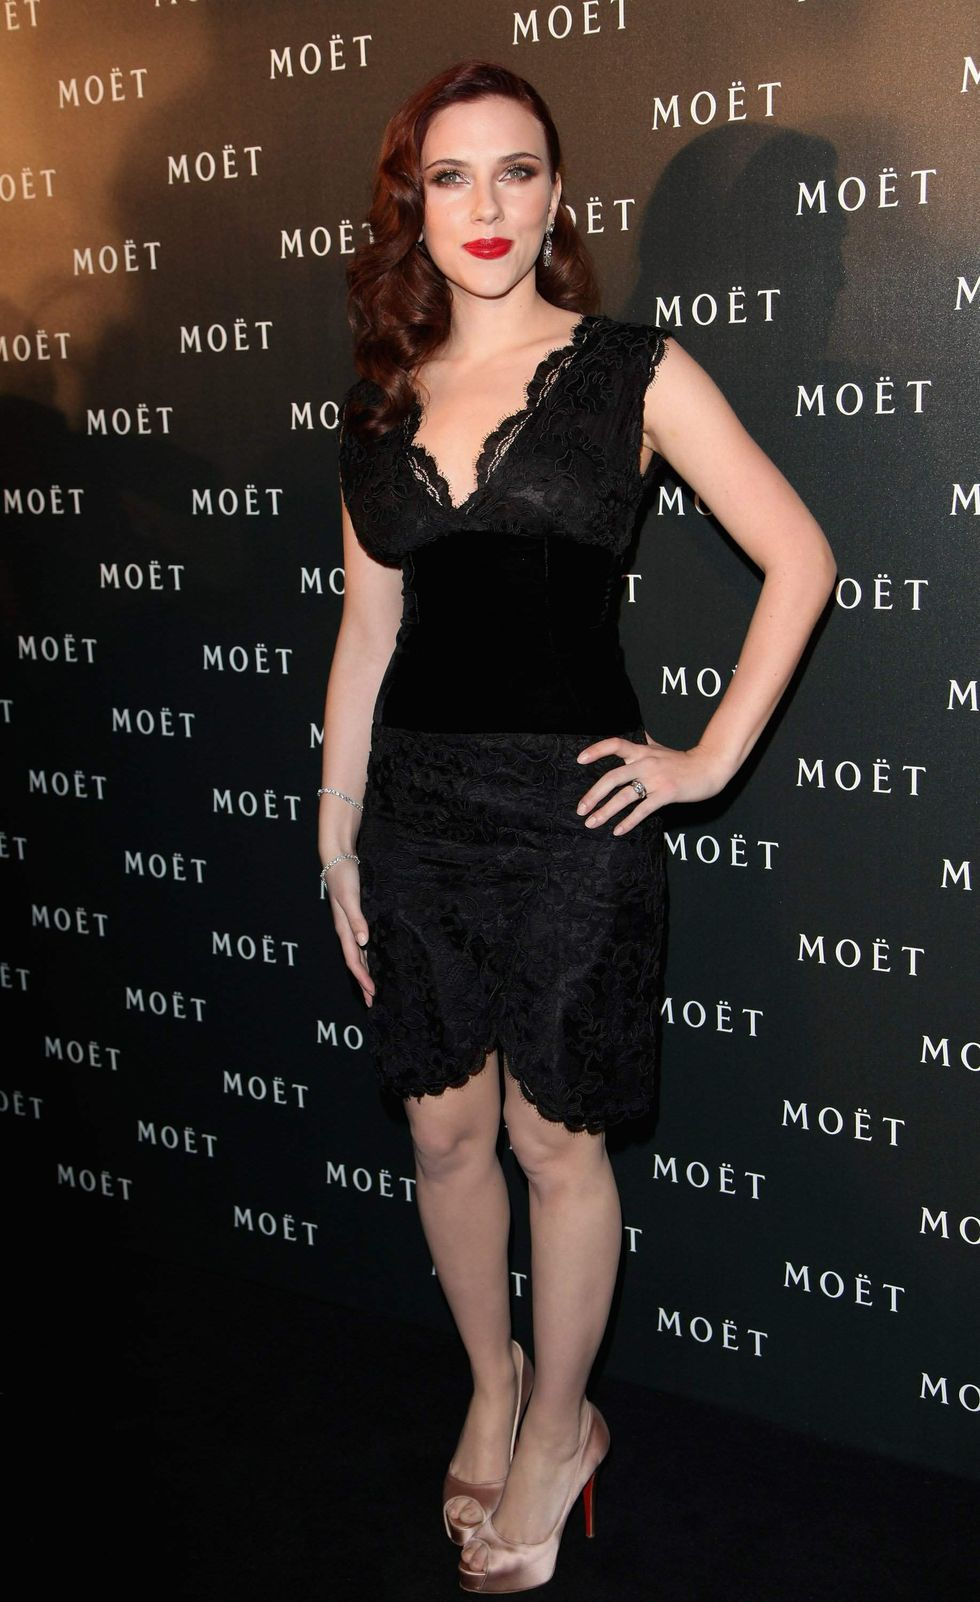 scarlett-johansson-a-tribute-to-cinema-party-in-london-01